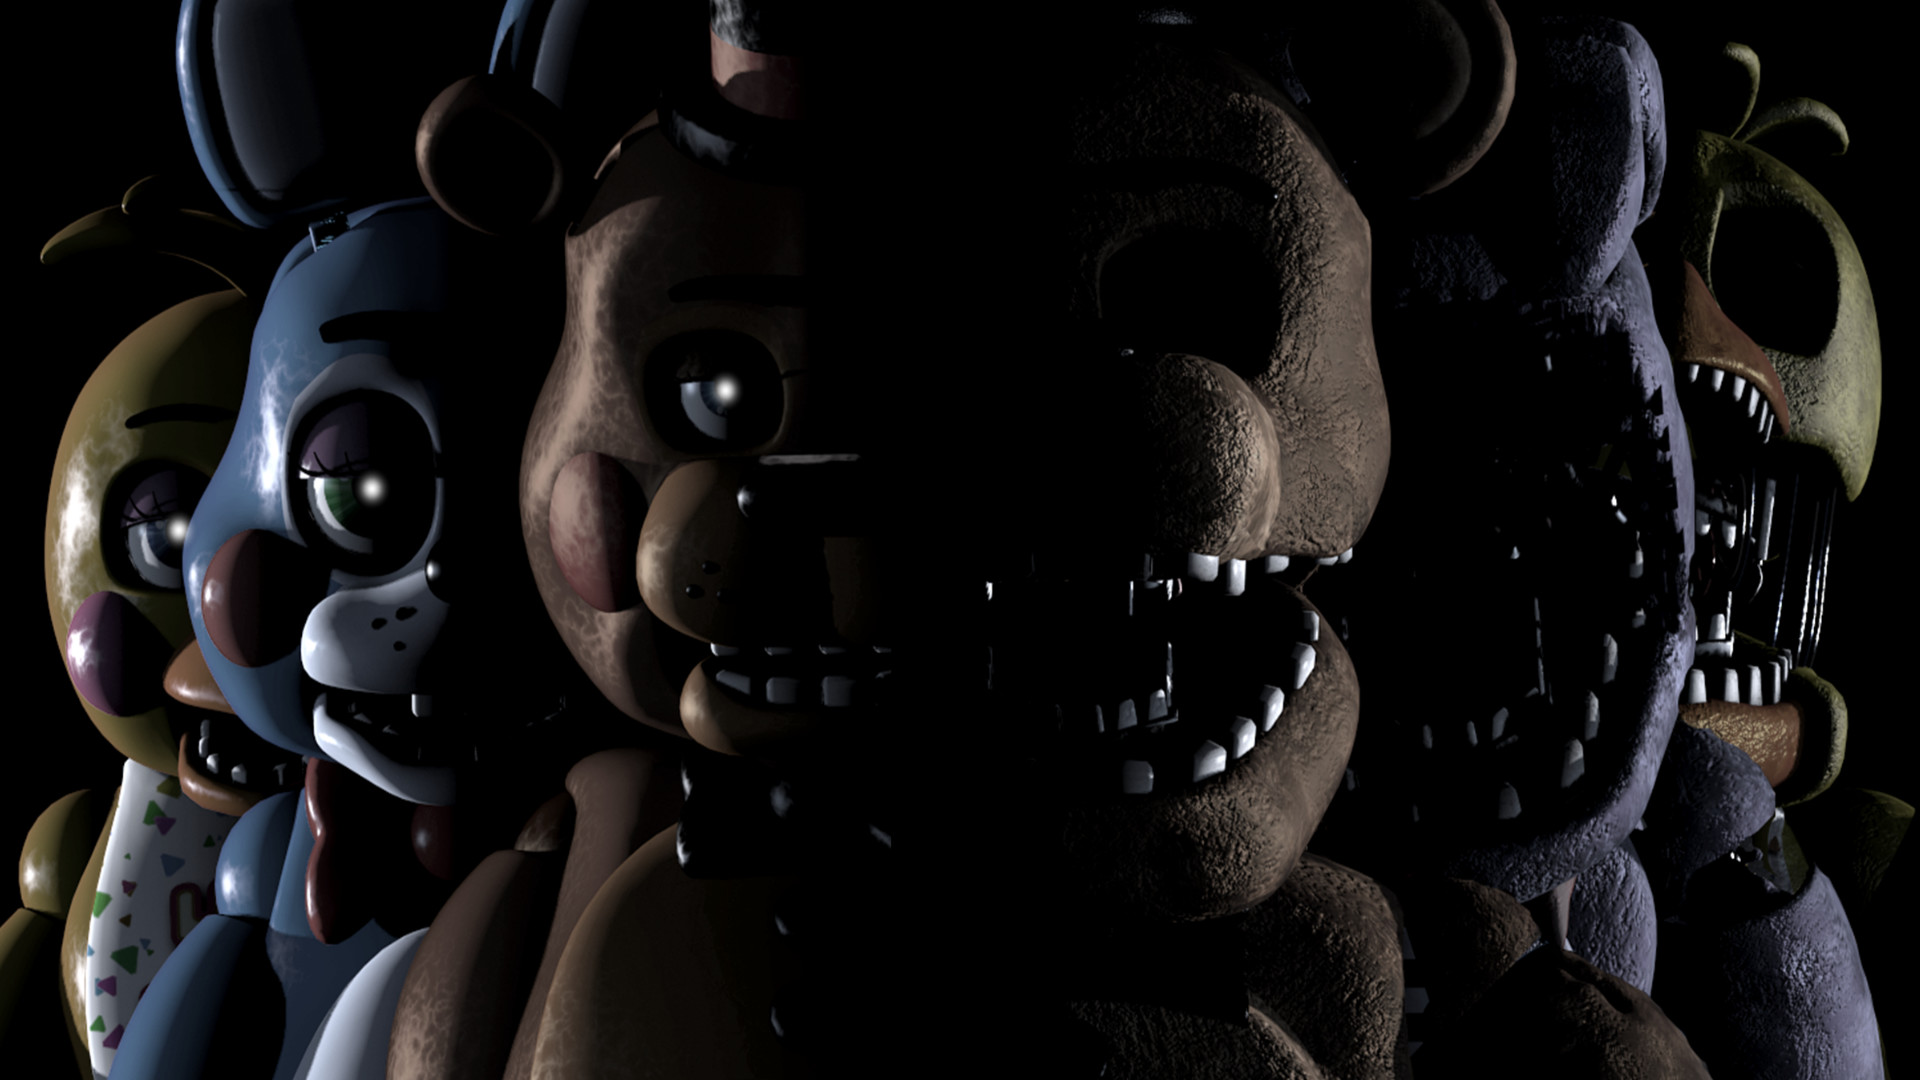 1920x1080 Five Nights at Freddy's Wallpaper 1080p (2)